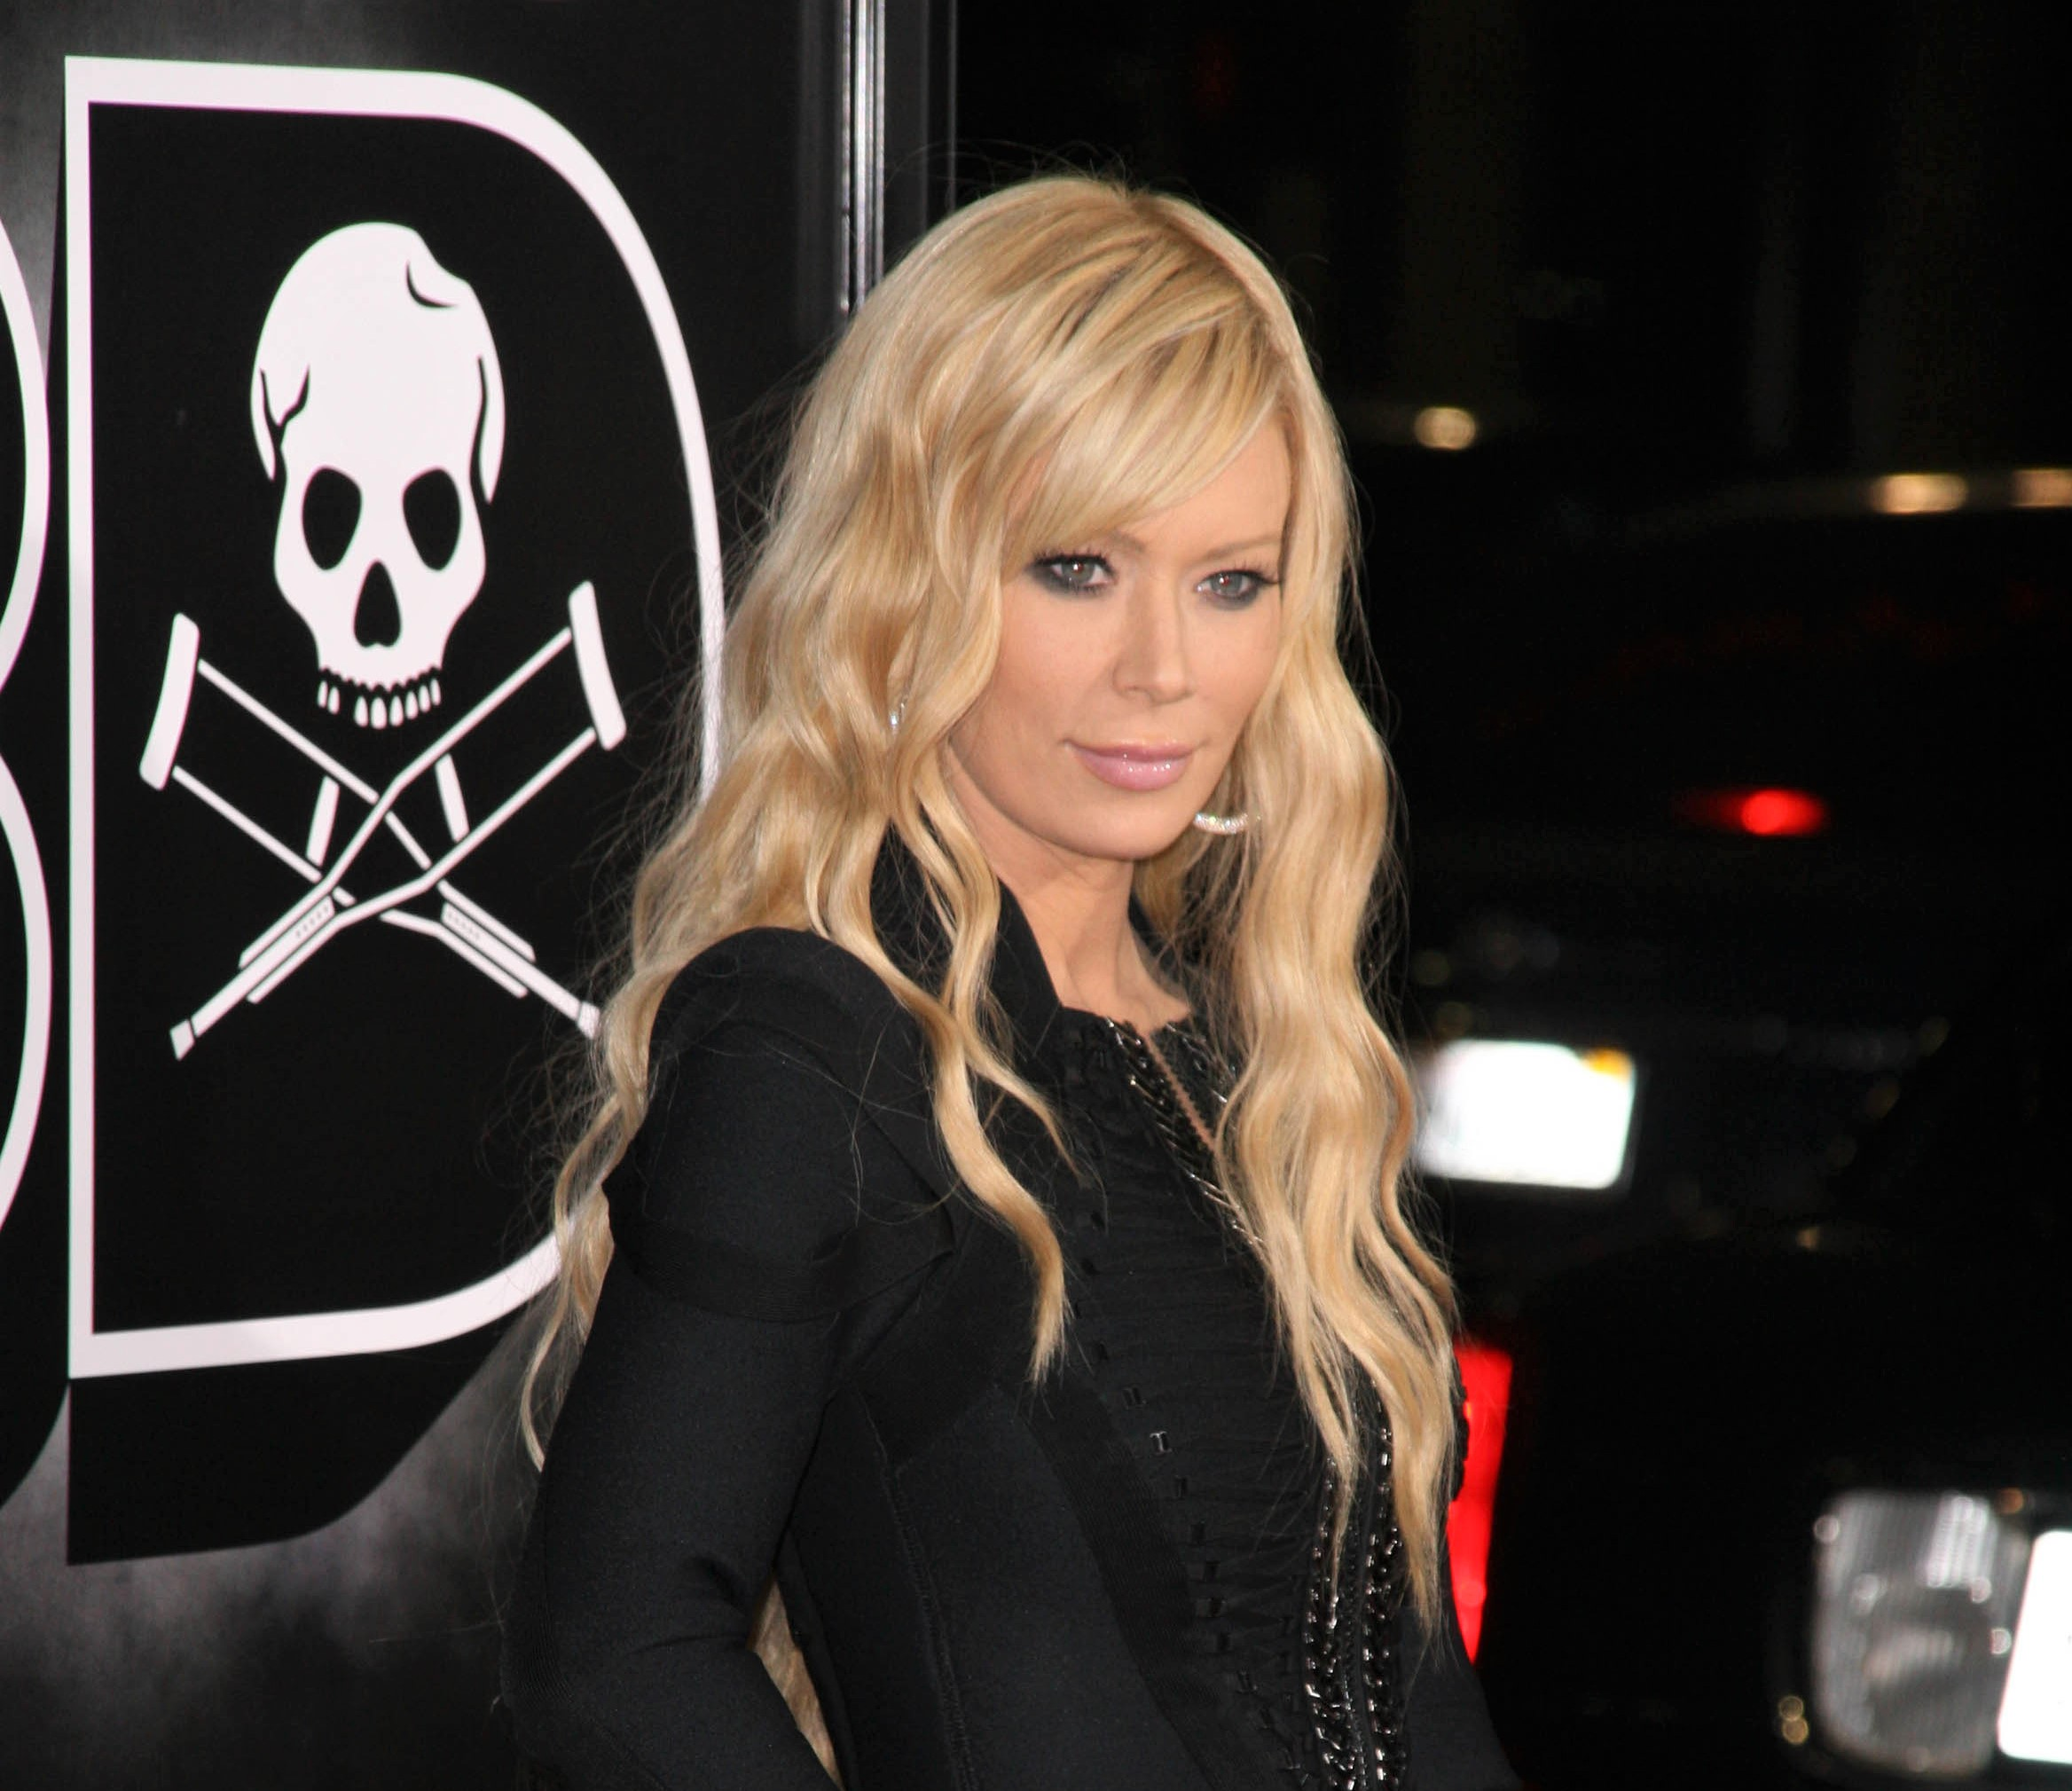 Jenna Jameson 'Almost' Had Fiancé Lior Help with Blocked Milk Duct from Breastfeeding